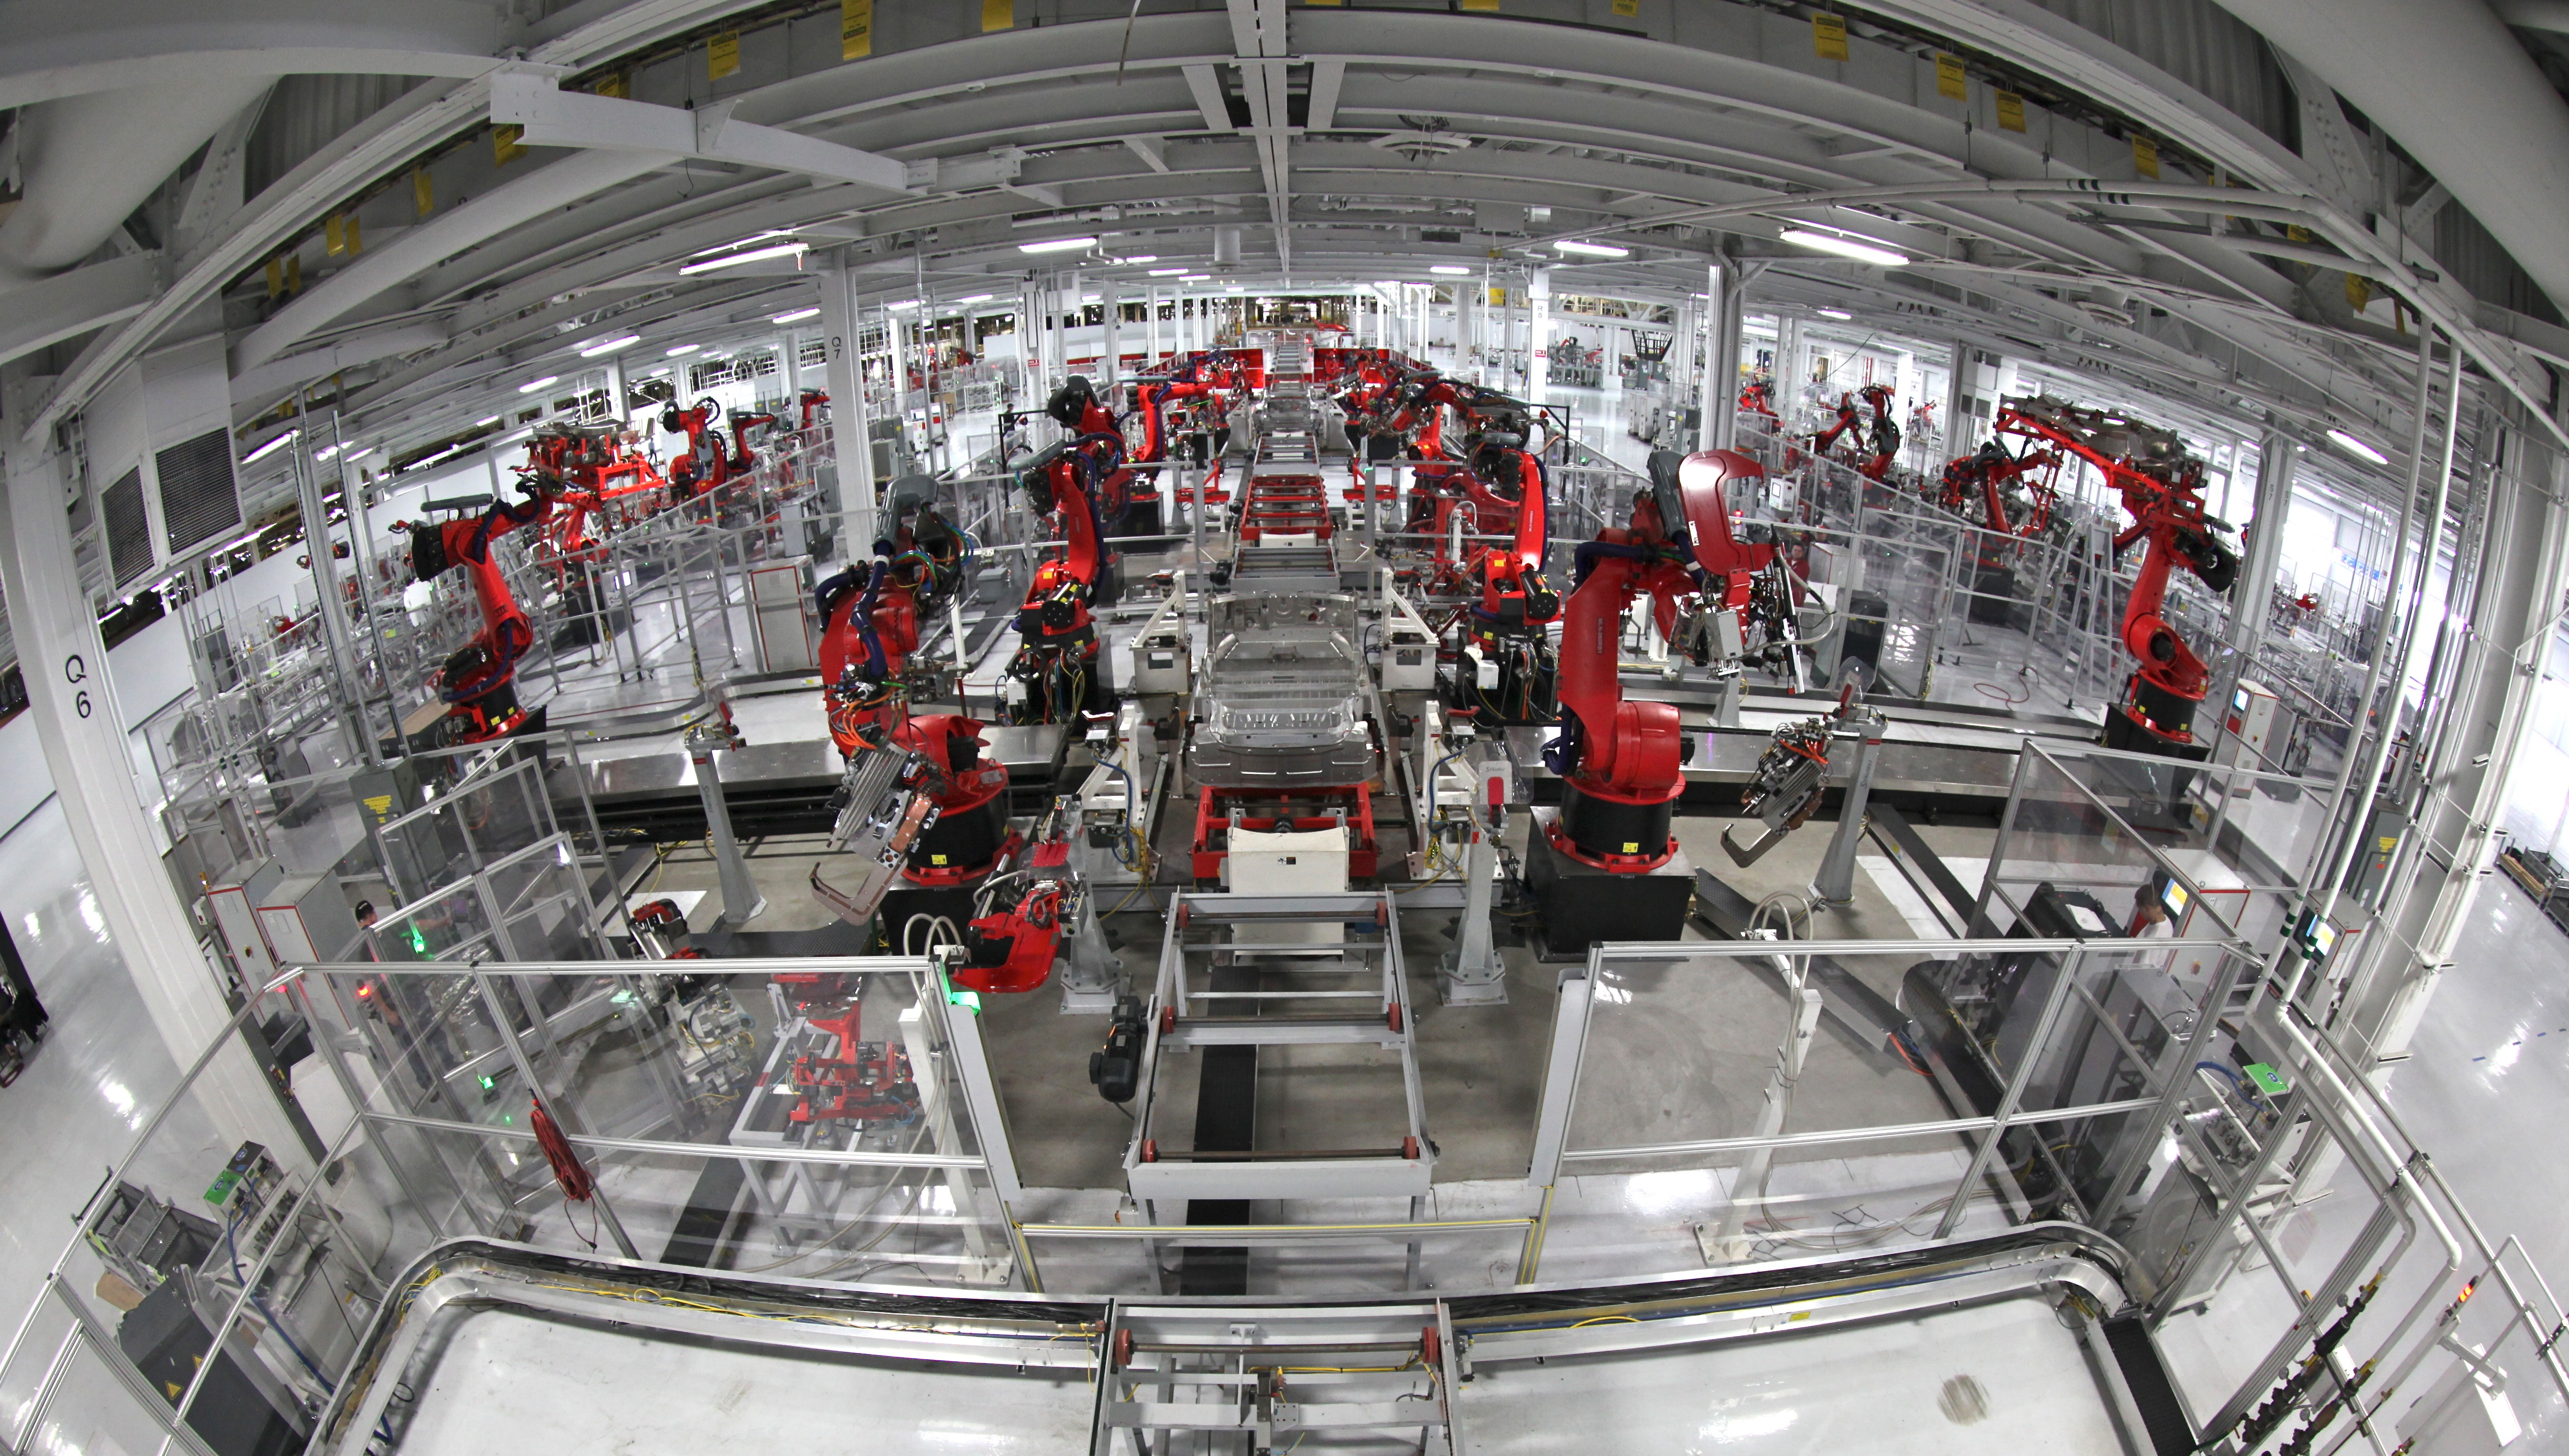 Tesla Motors automated assembly line. Image: Steve Jurvetson.